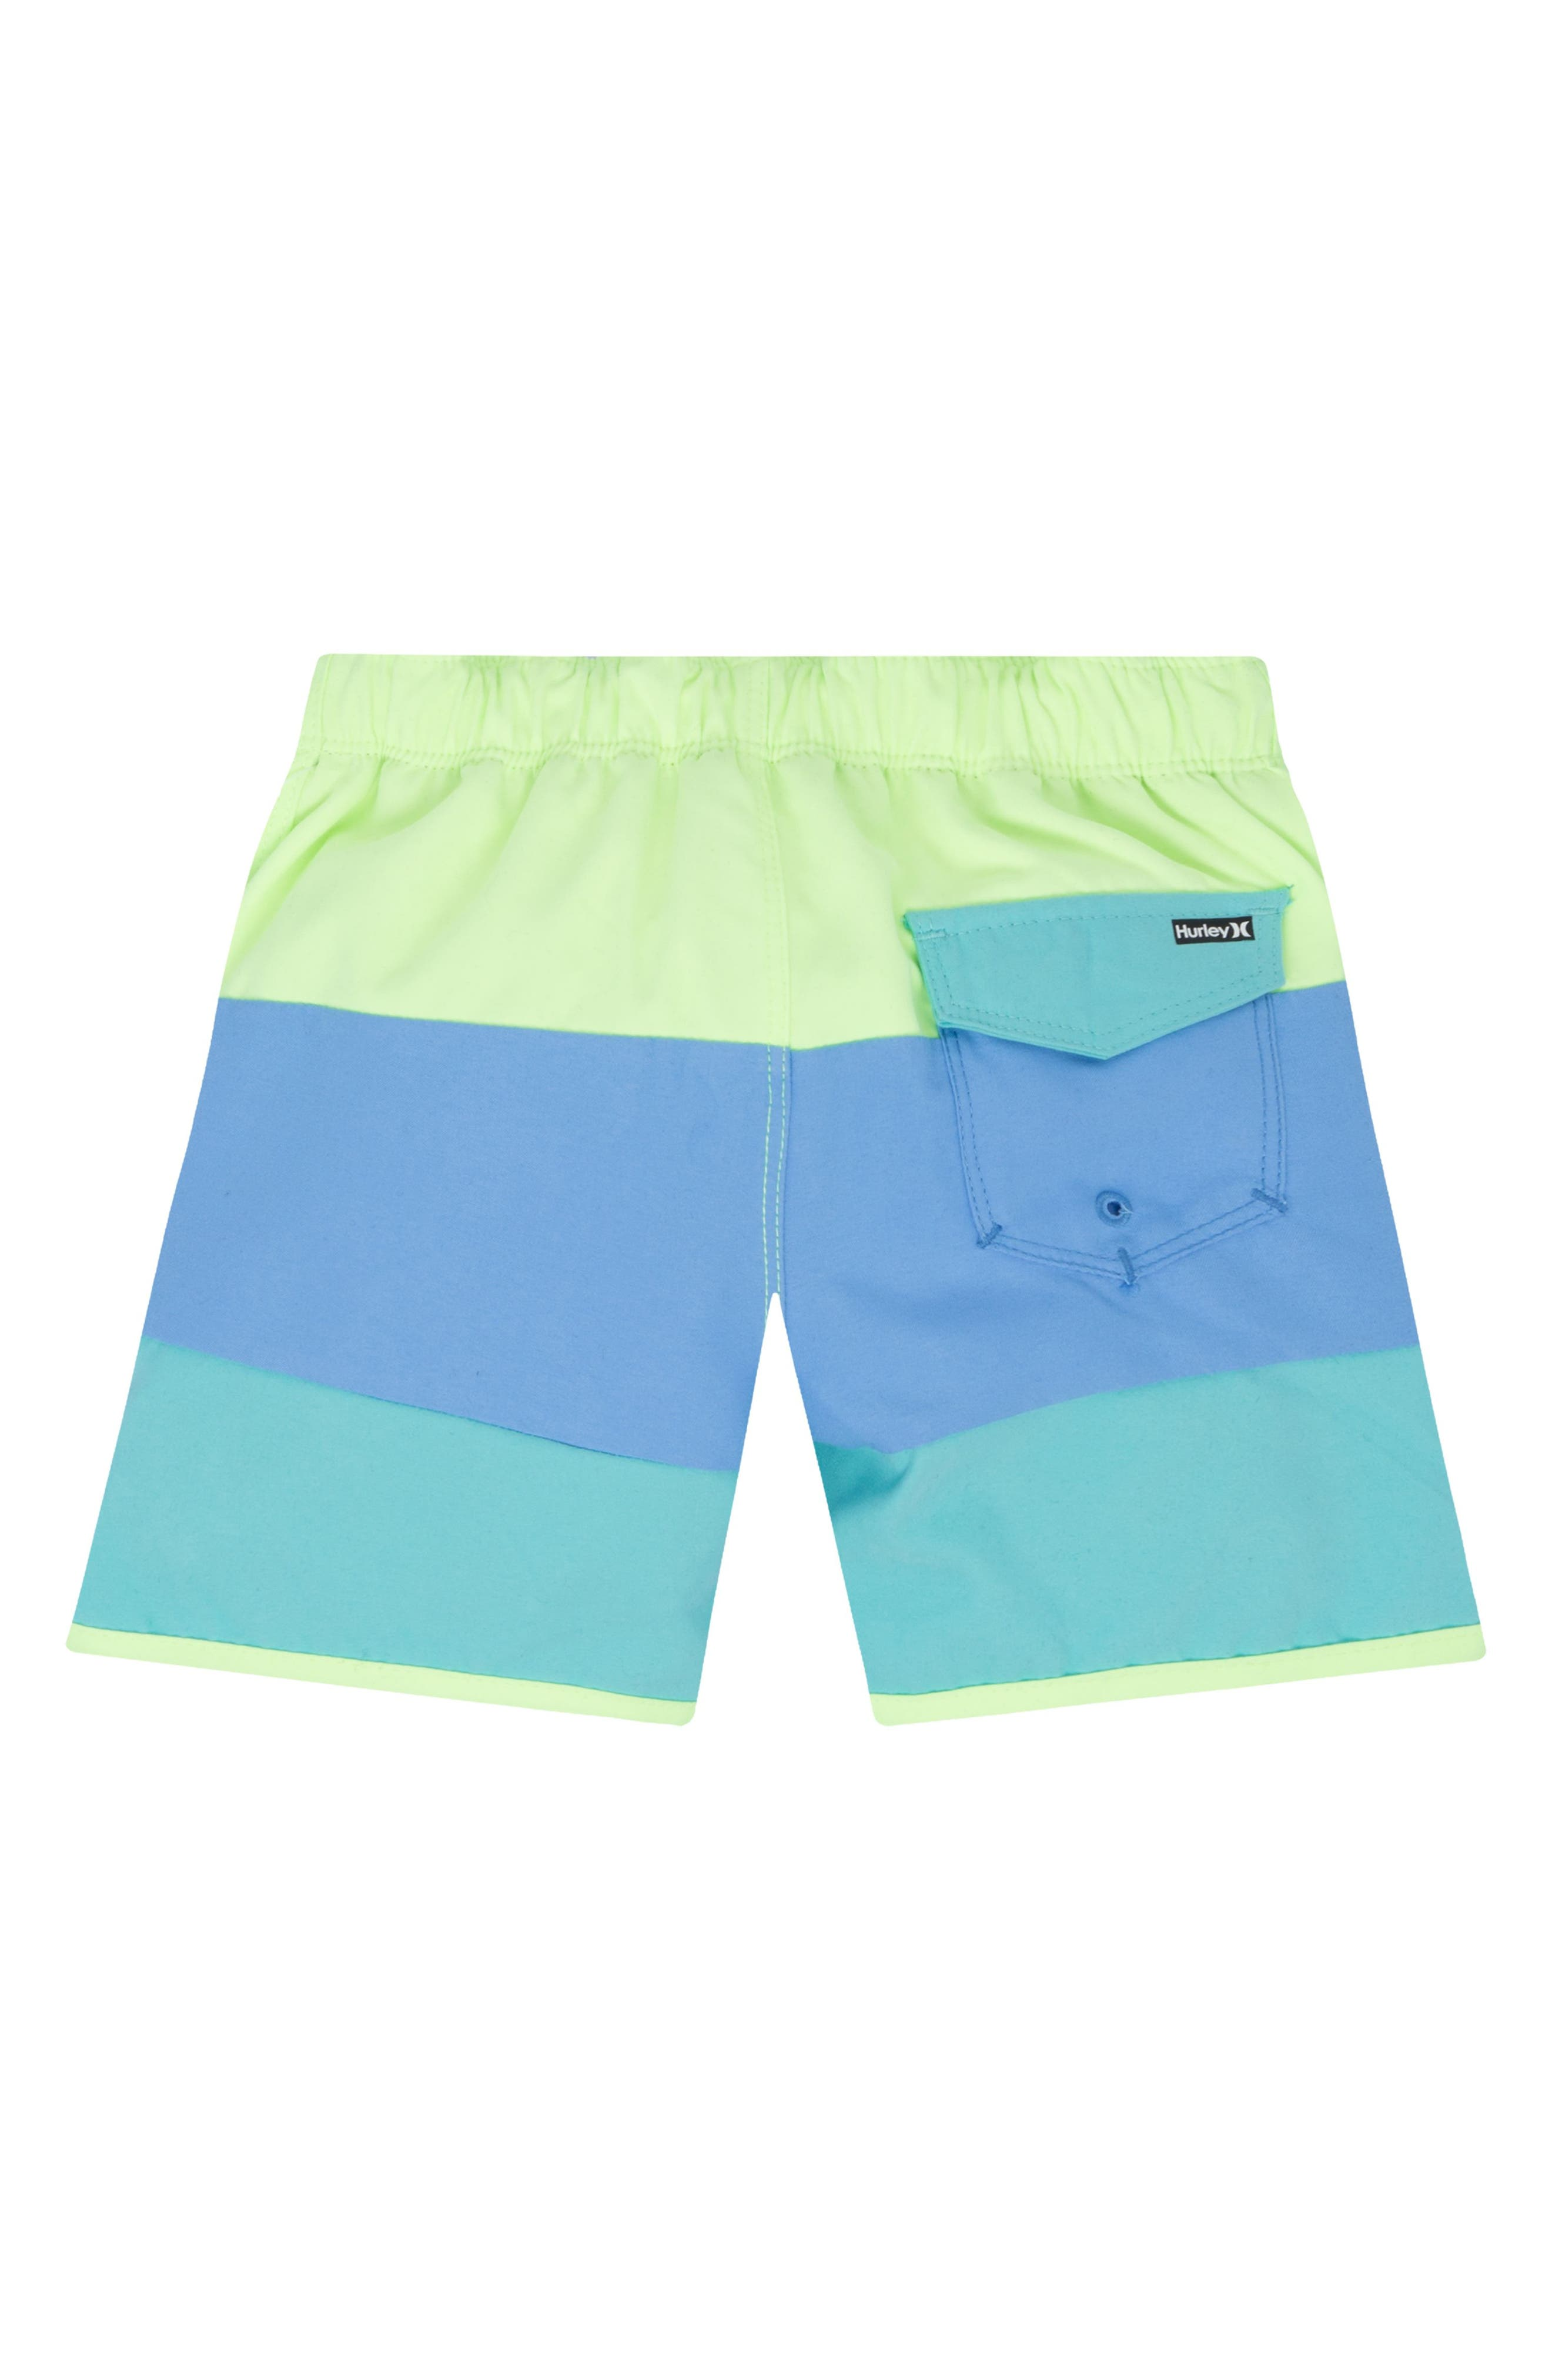 Triple Threat Board Shorts,                             Alternate thumbnail 2, color,                             Ghost Green